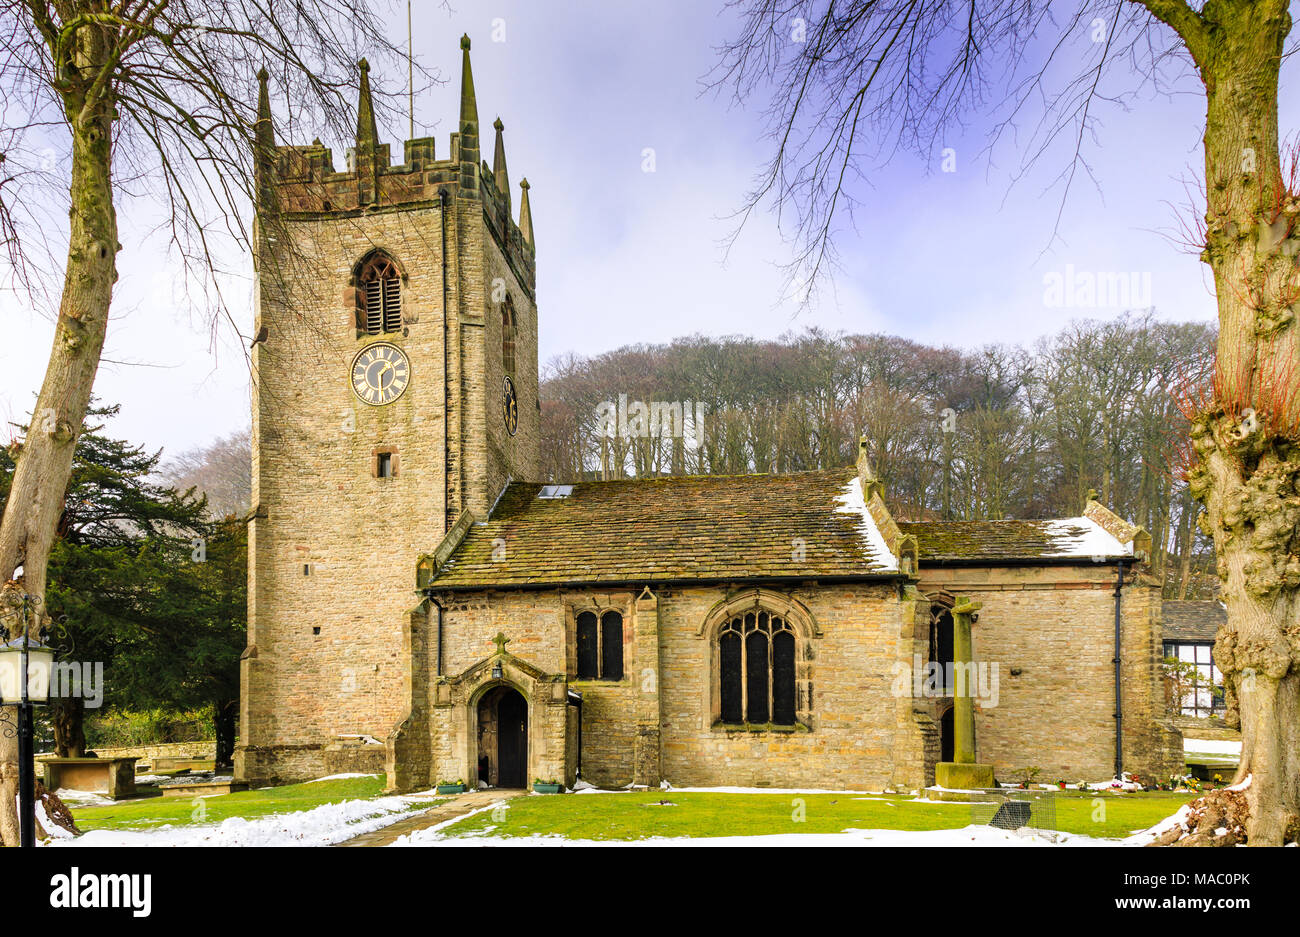 Pott Shrigley village church is a picturesque church in a rural Cheshire village that is popular for weddings.  Close to Bollington - Stock Image